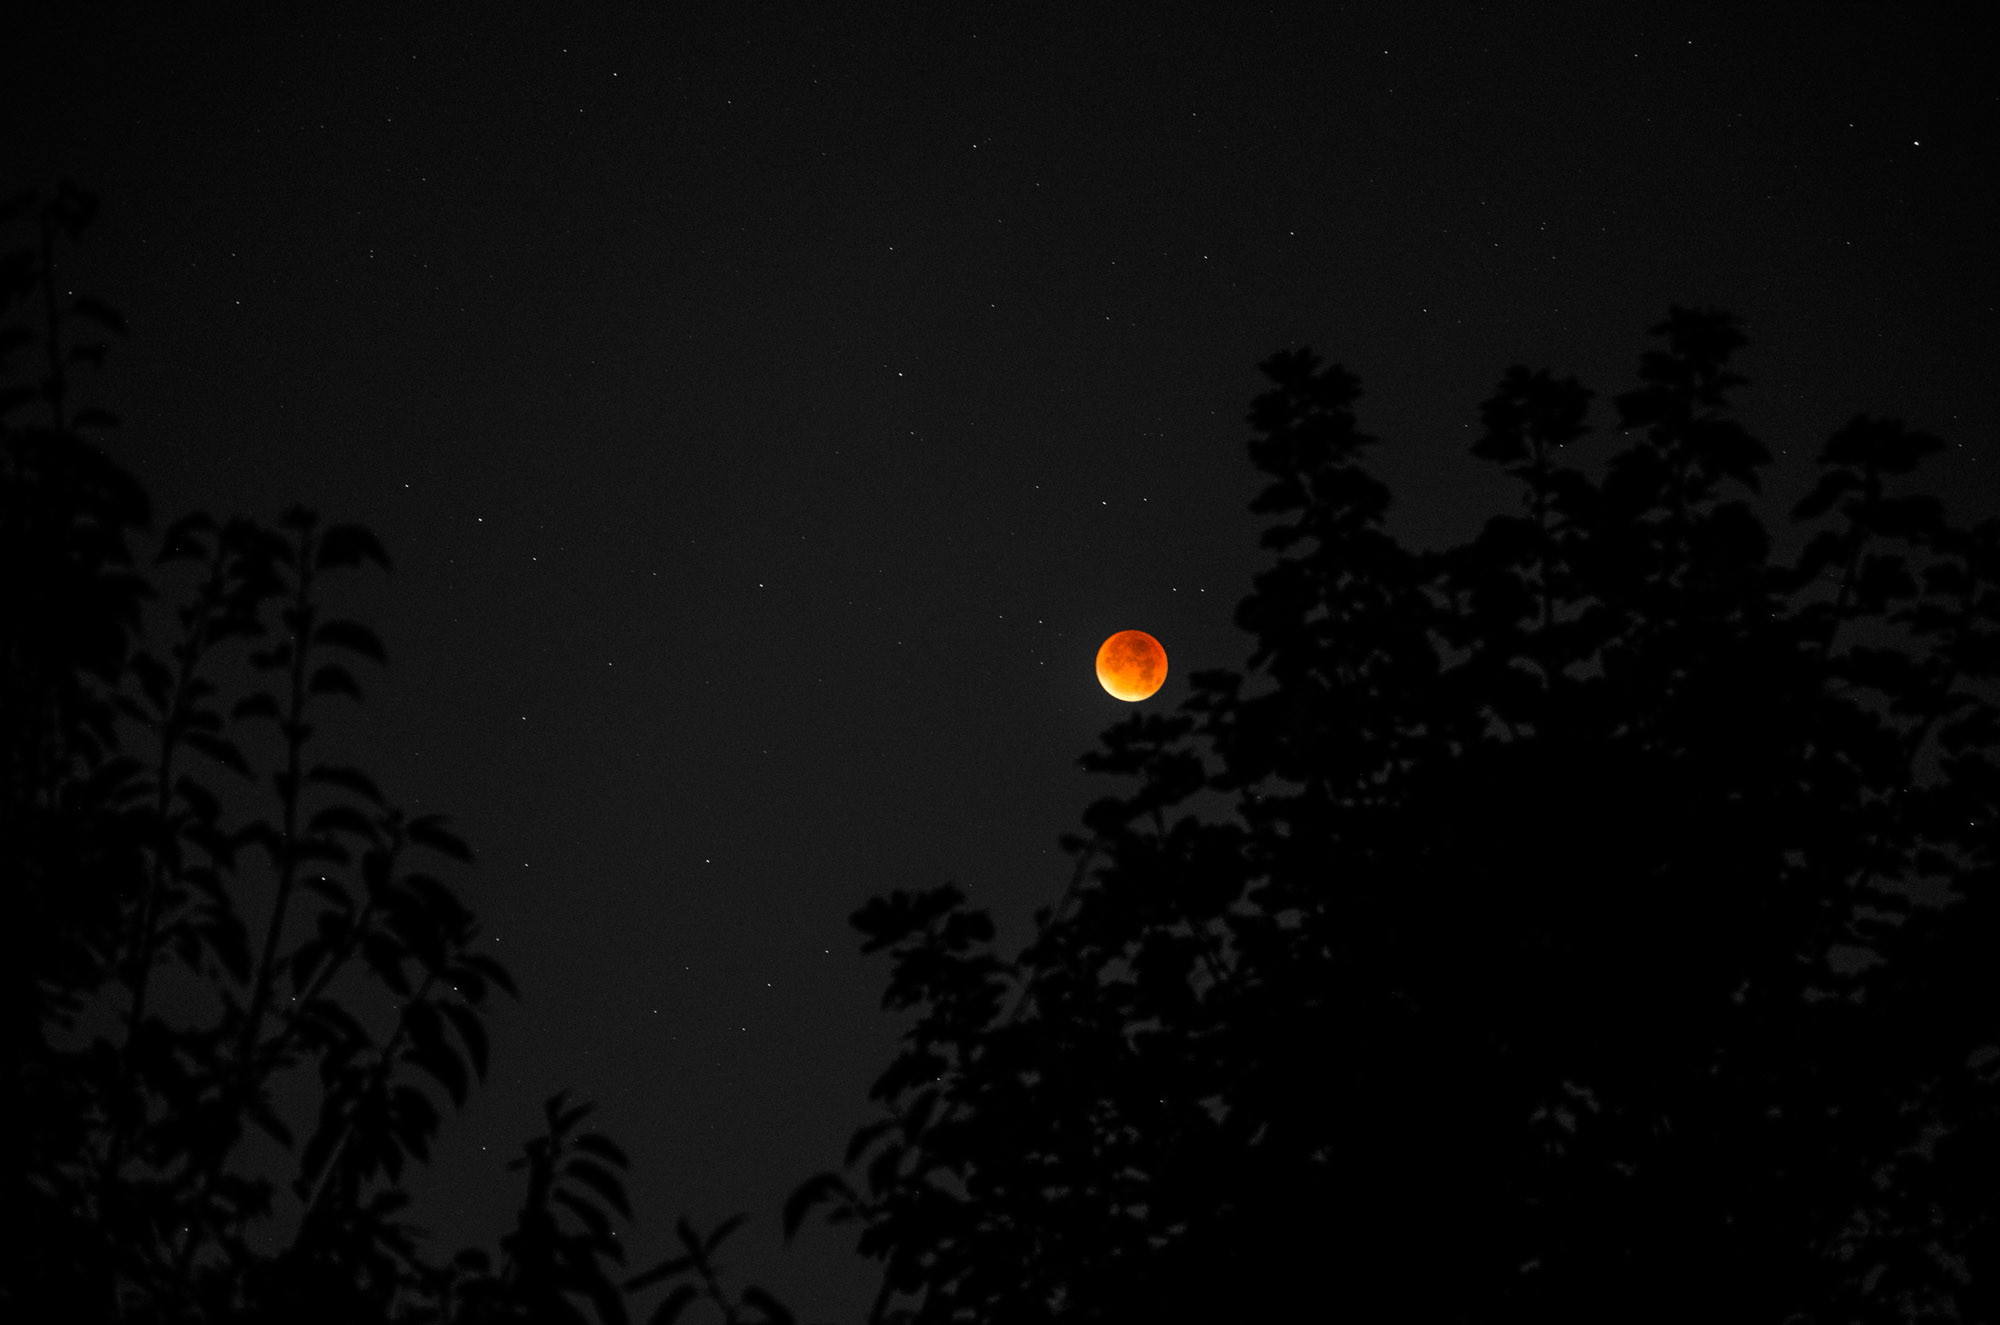 The blood moon with foliage in the foreground